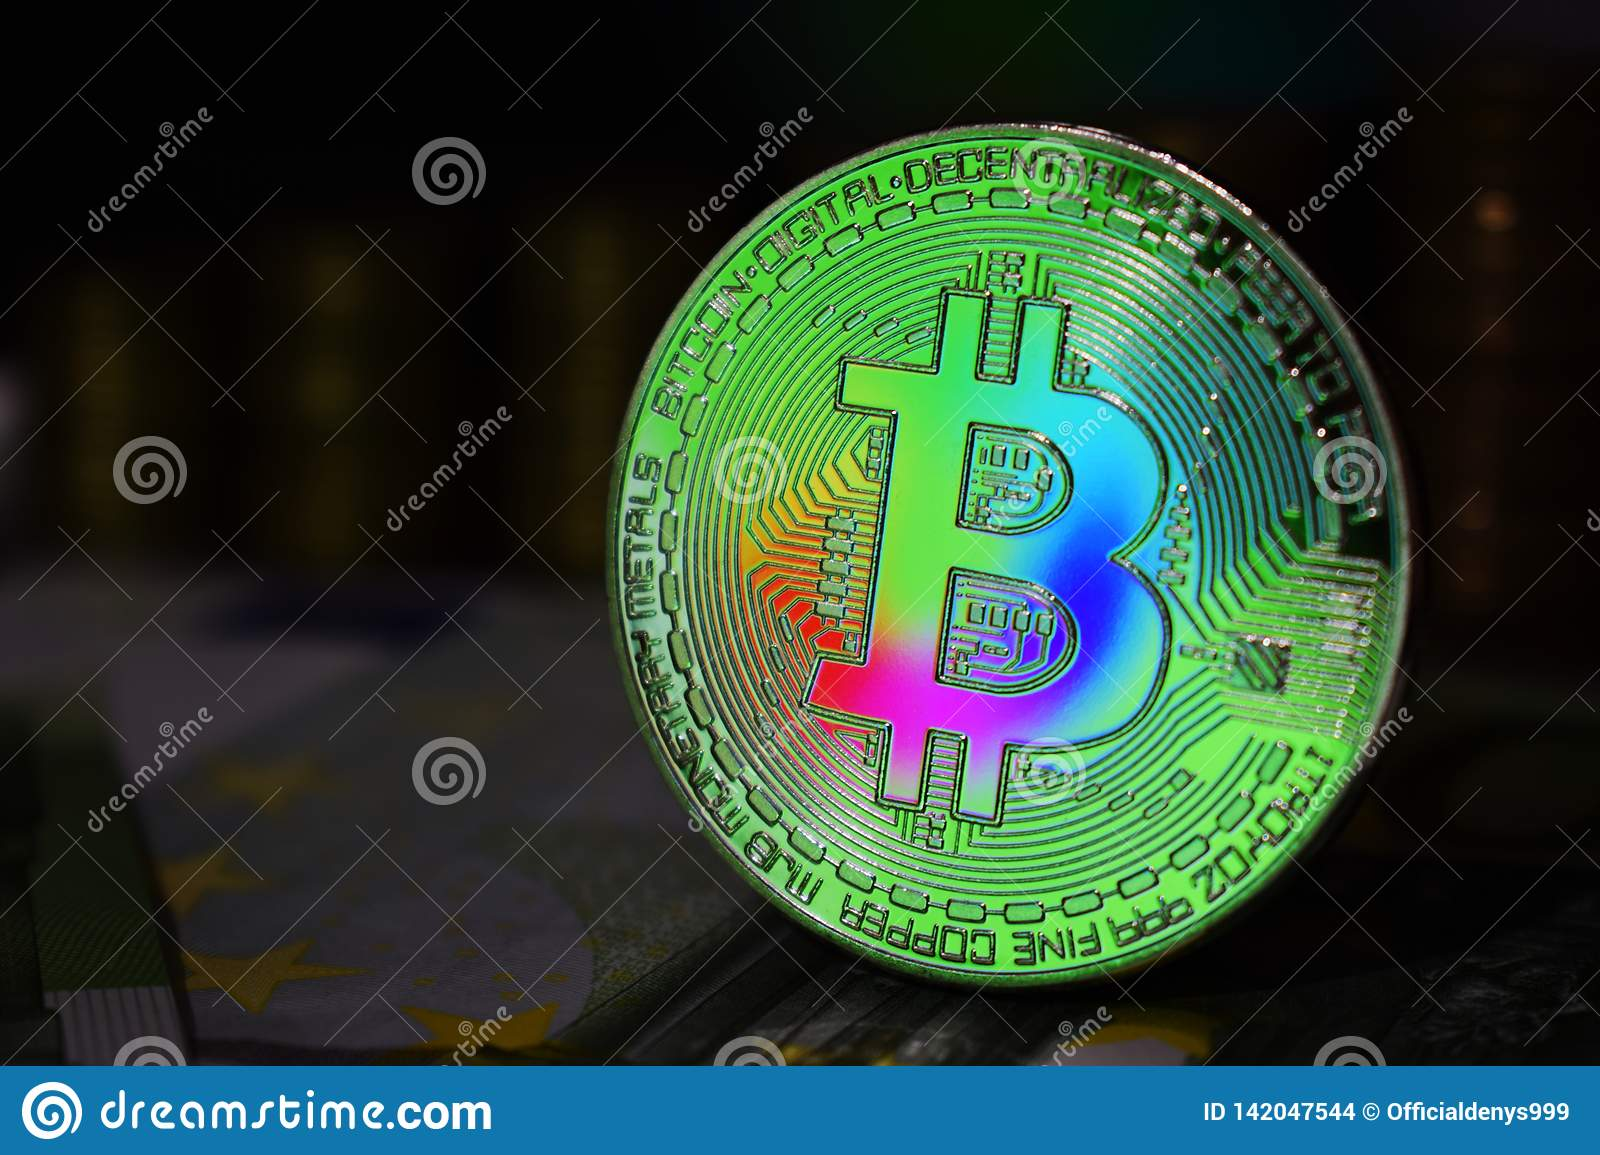 The rainbow physical bitcoin coin is BTC, preferably color green.